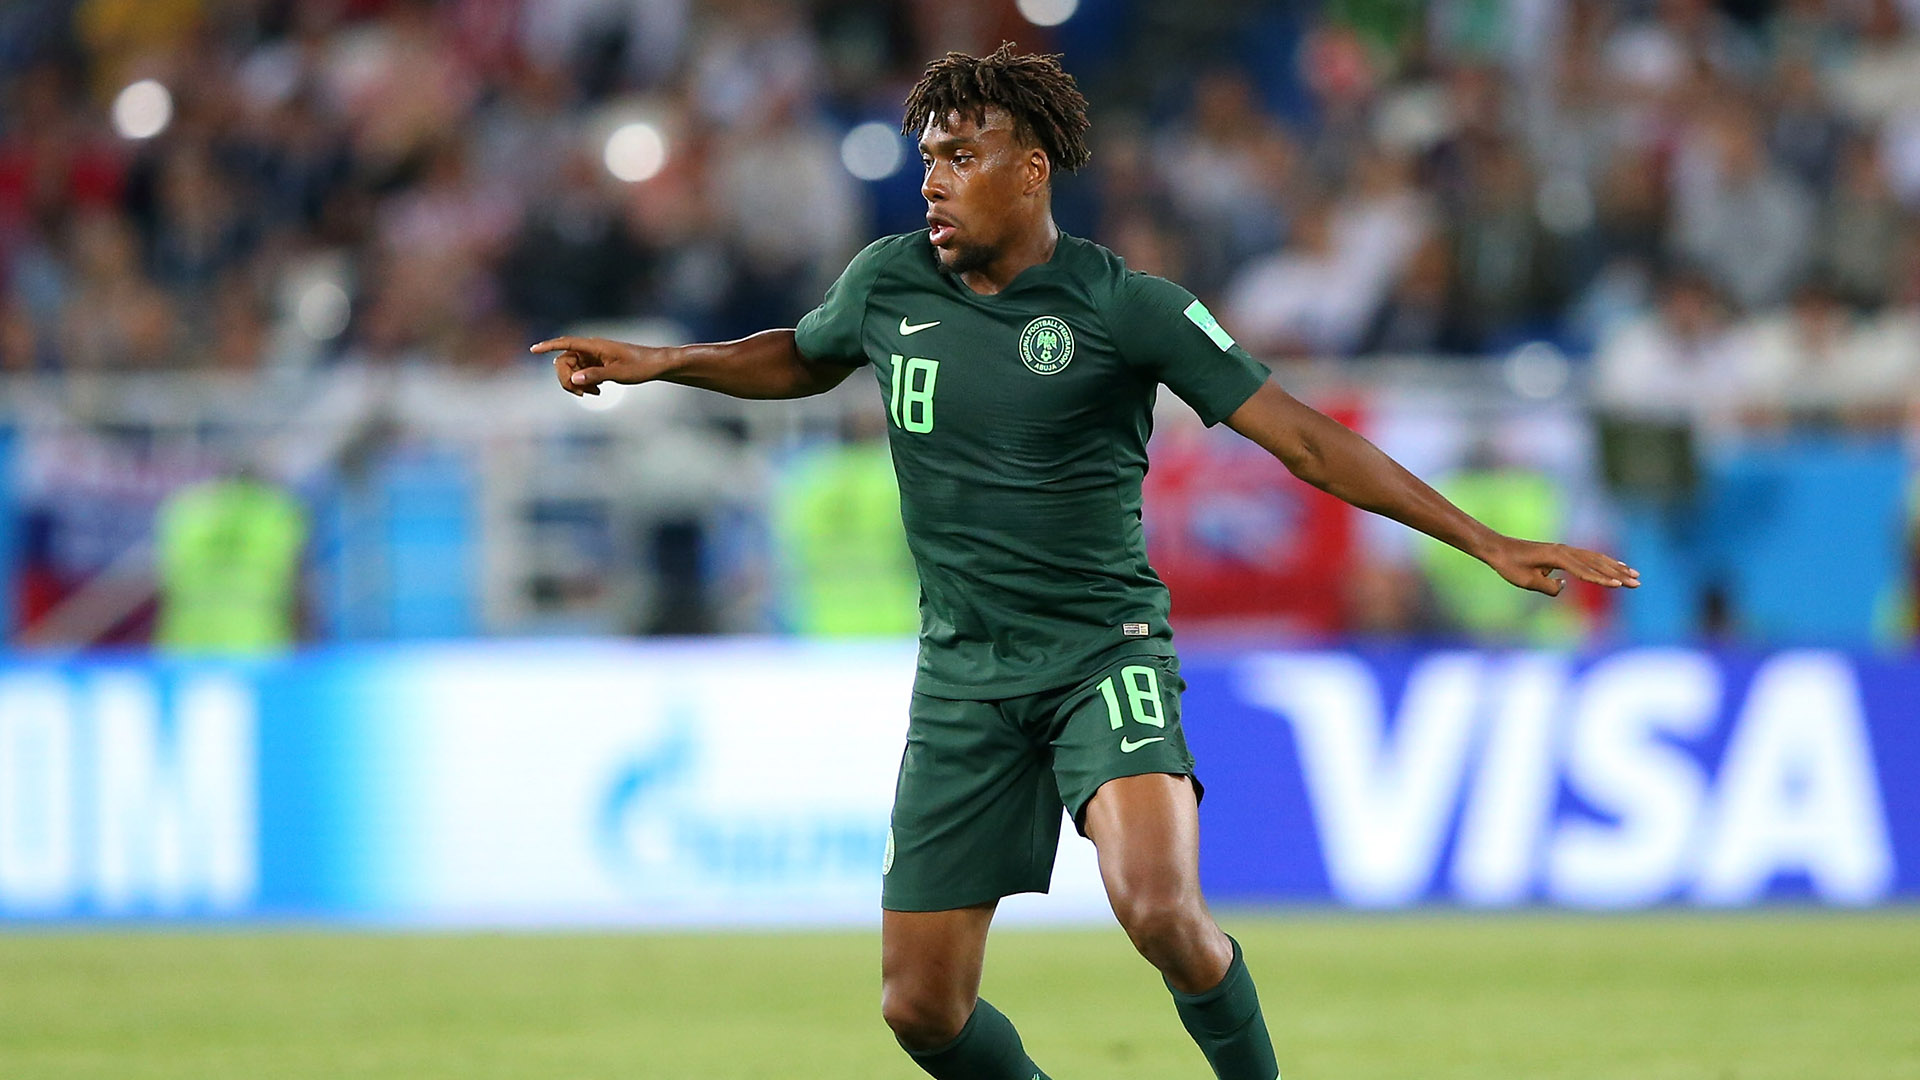 Ukraine 2-2 Nigeria: What did we learn?